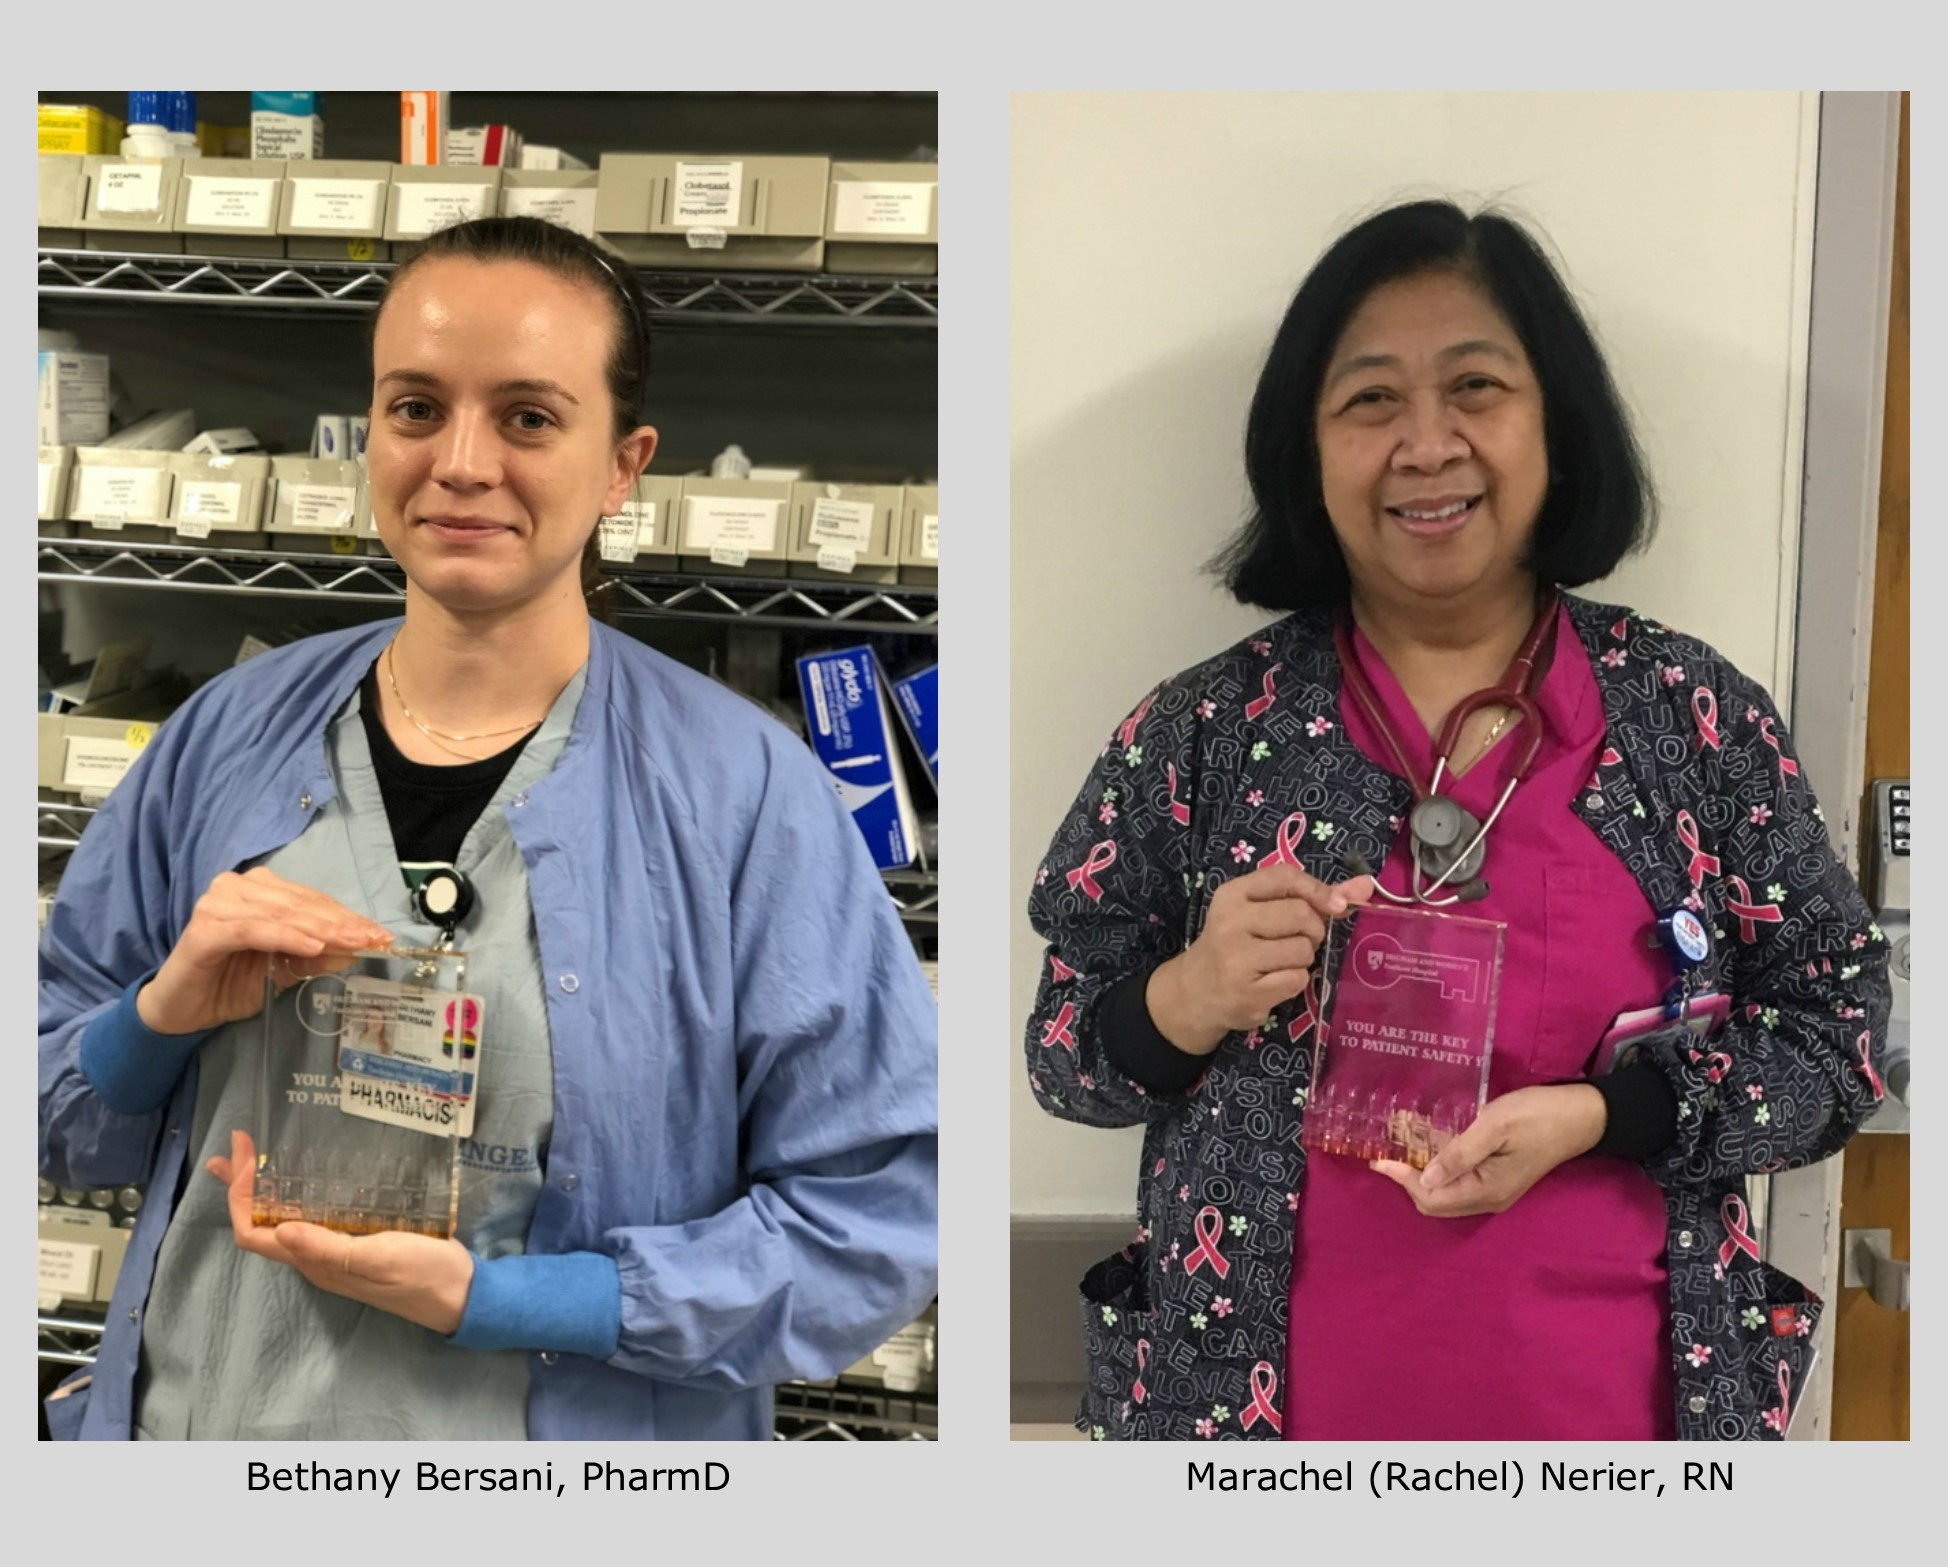 Spring 2019 Patient Safety Award Winners